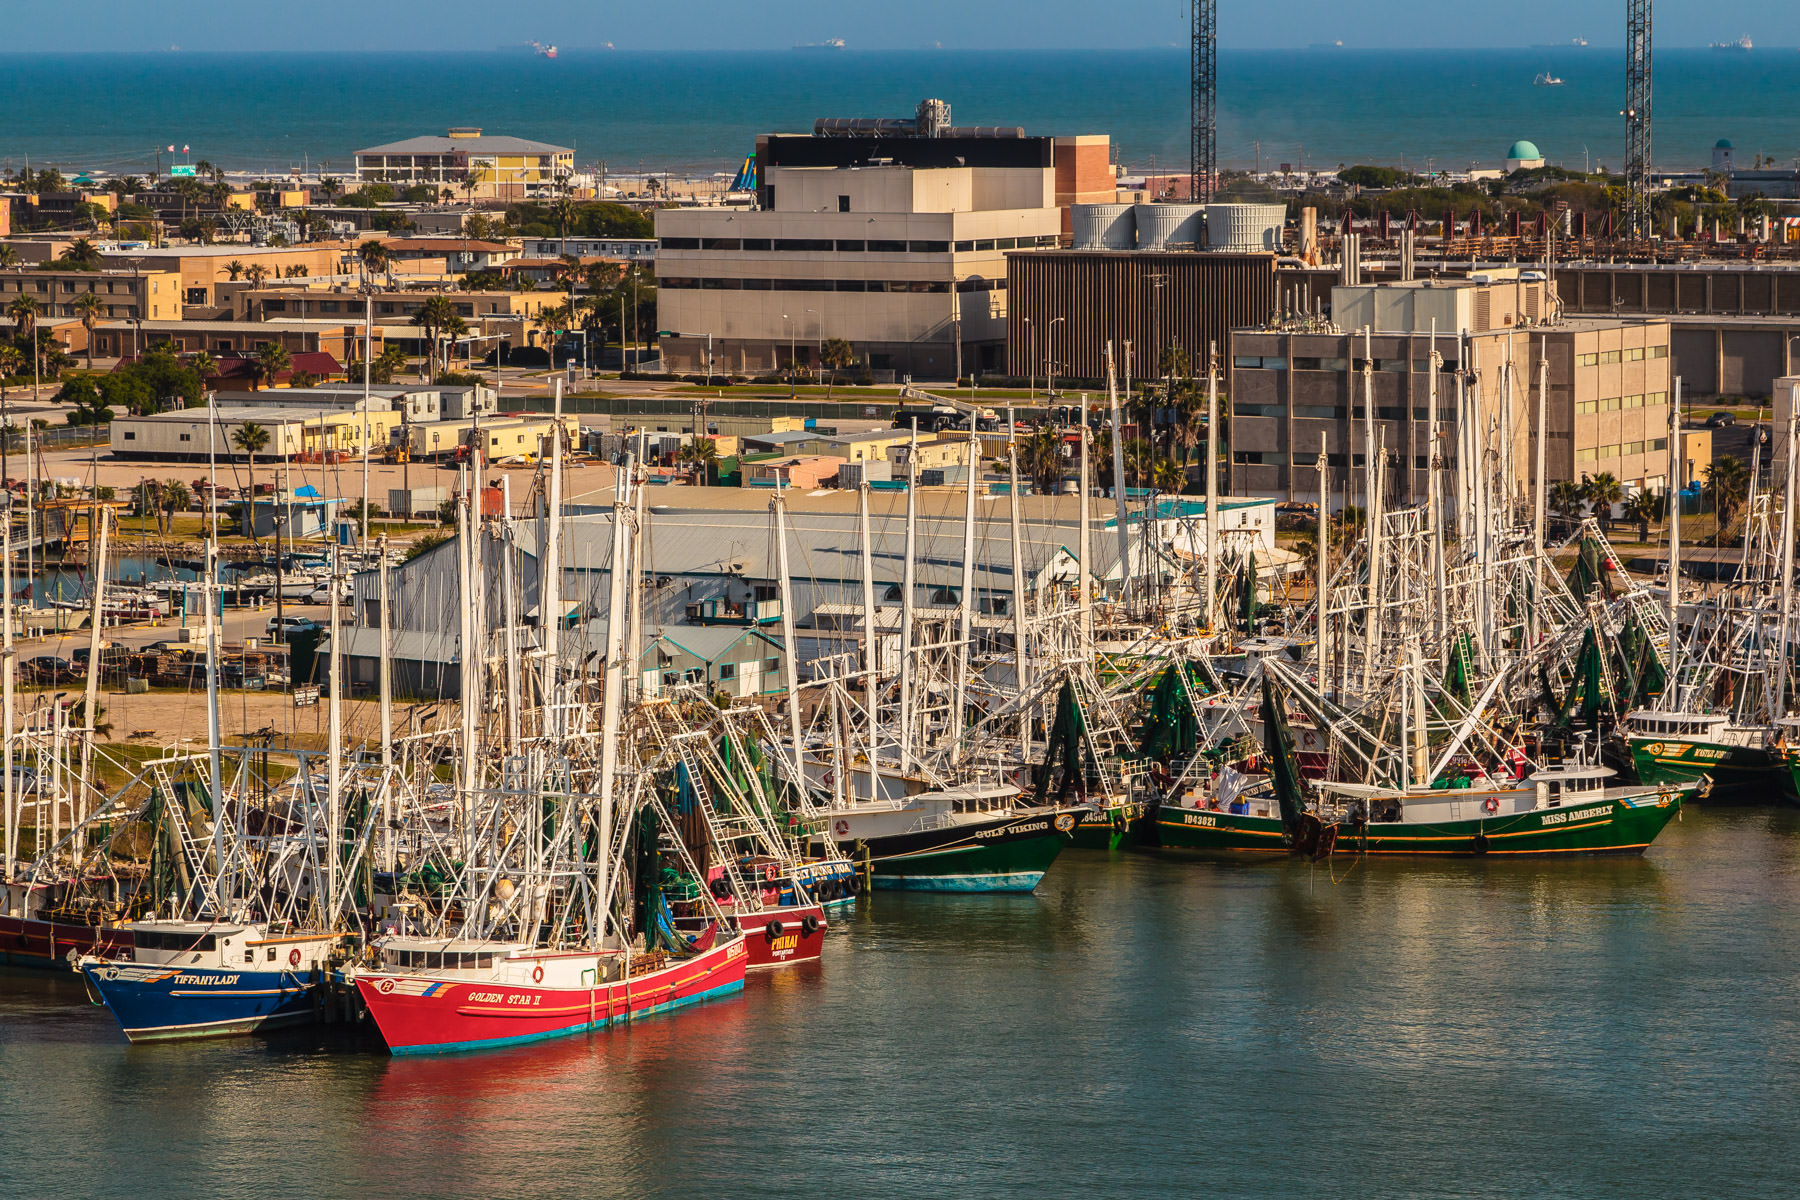 Shrimp trawlers docked in Galveston Harbor, Galveston, Texas.